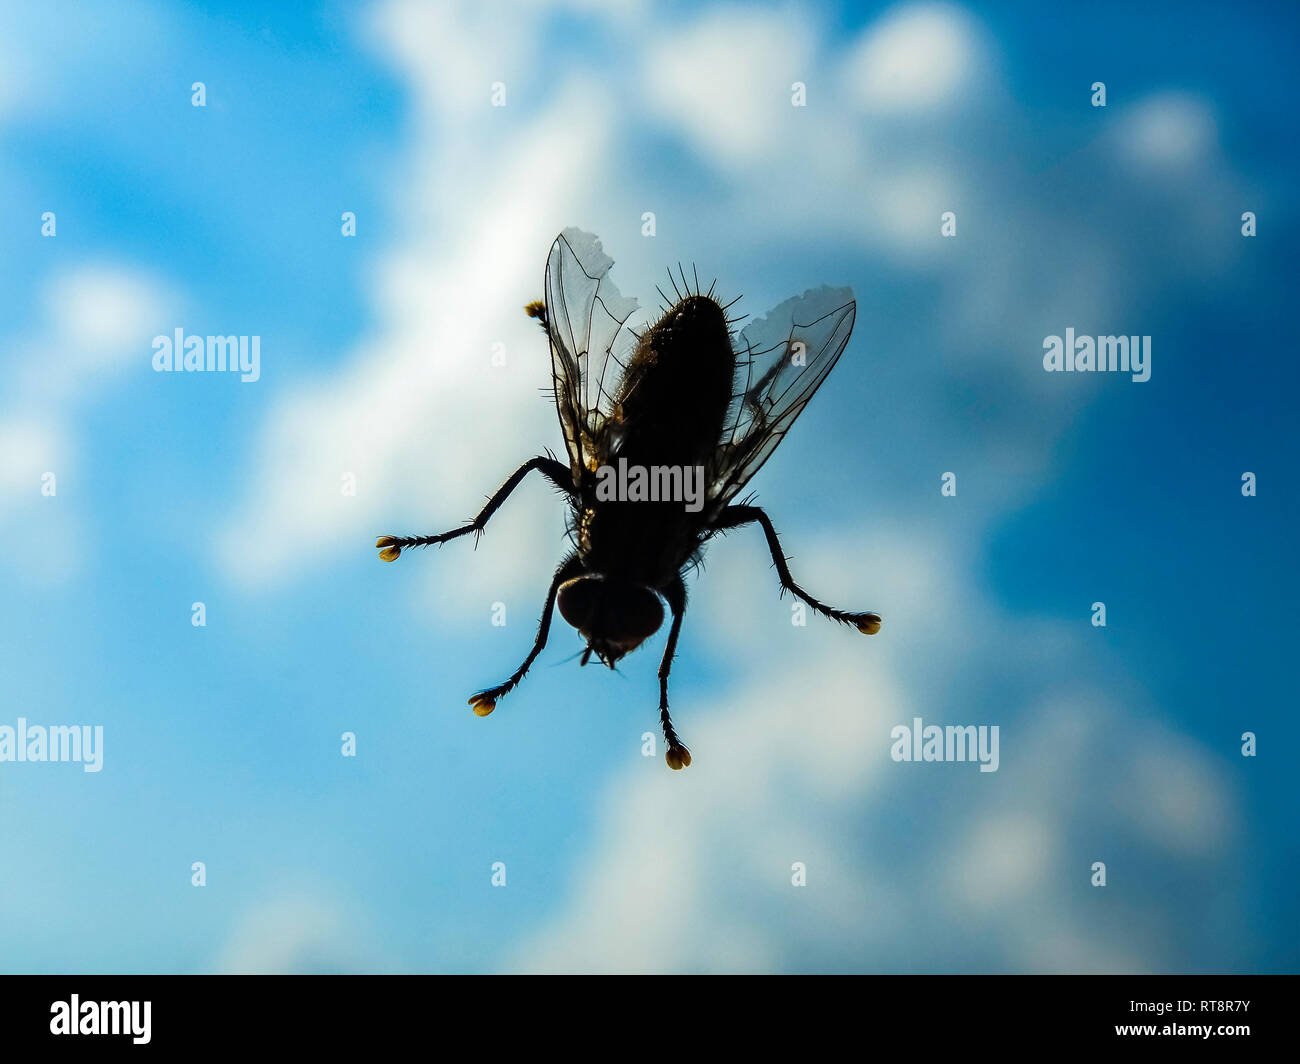 House fly close up macro - Domestic fly on window against sky - Shallow depth of field shot of live house fly - Stock Image